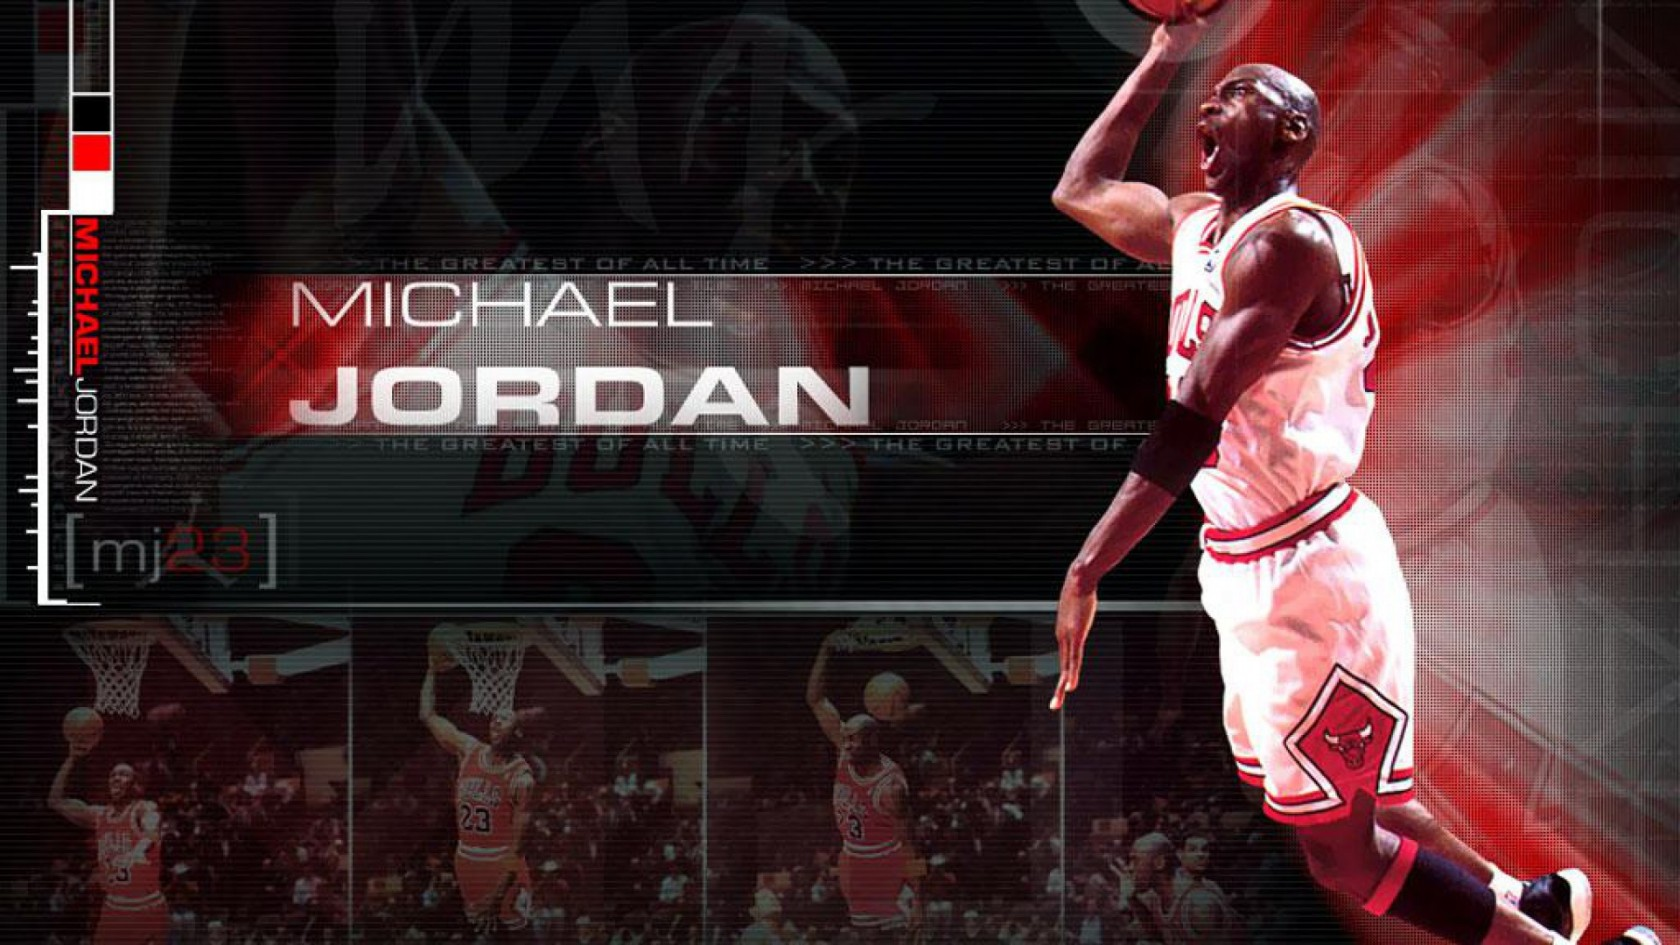 Michael Jordan Dunk 2013 HD Wallpaper of Sports 1680x945